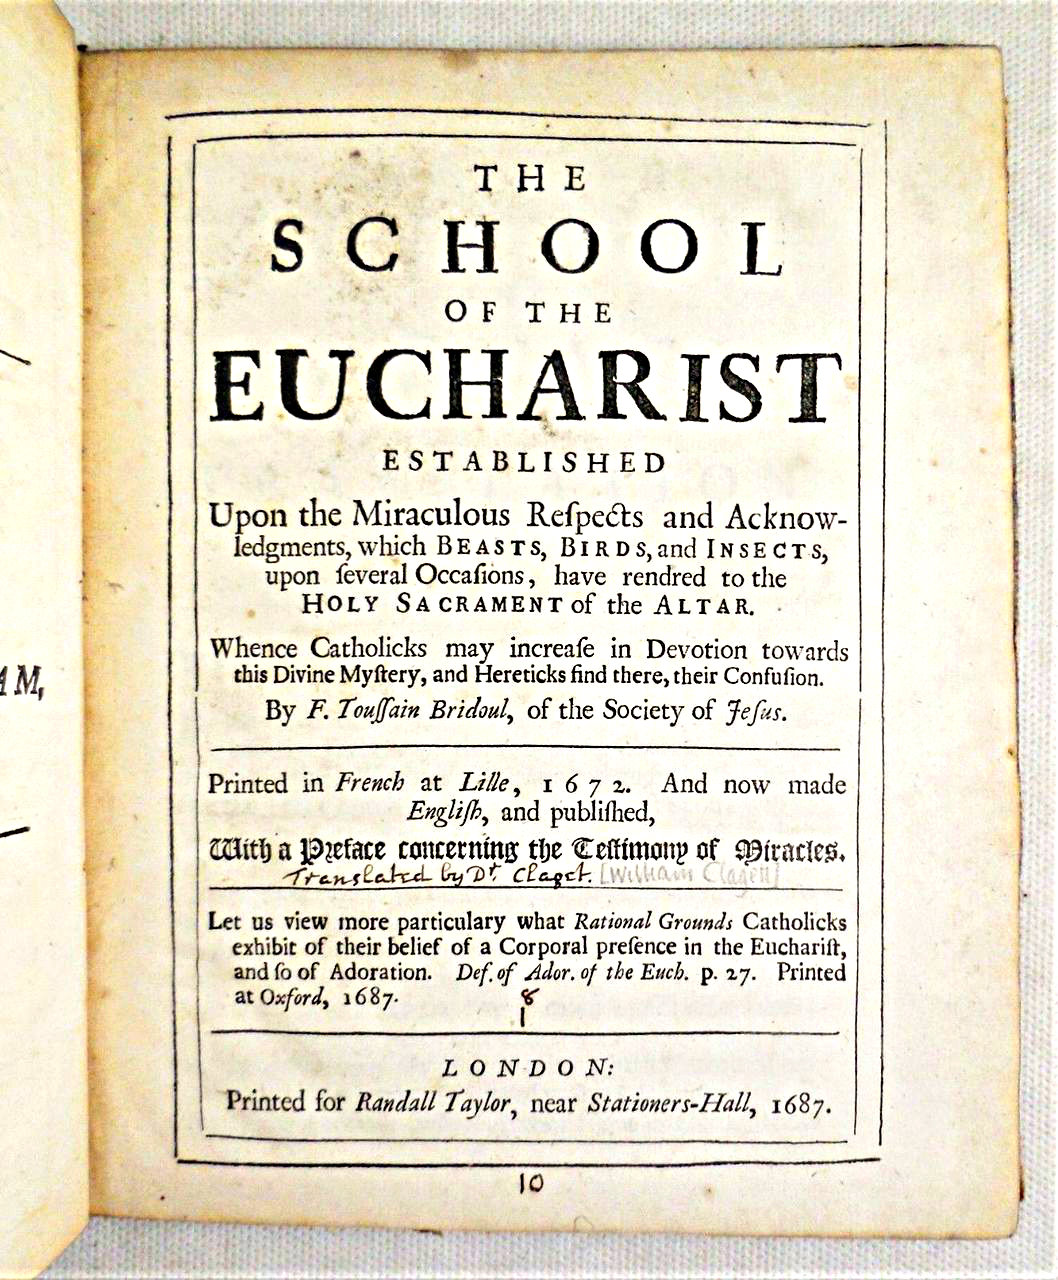 THE SCHOOL OF THE EUCHARIST, by F. Toussain Bridoul - 1687 [1st Ed]